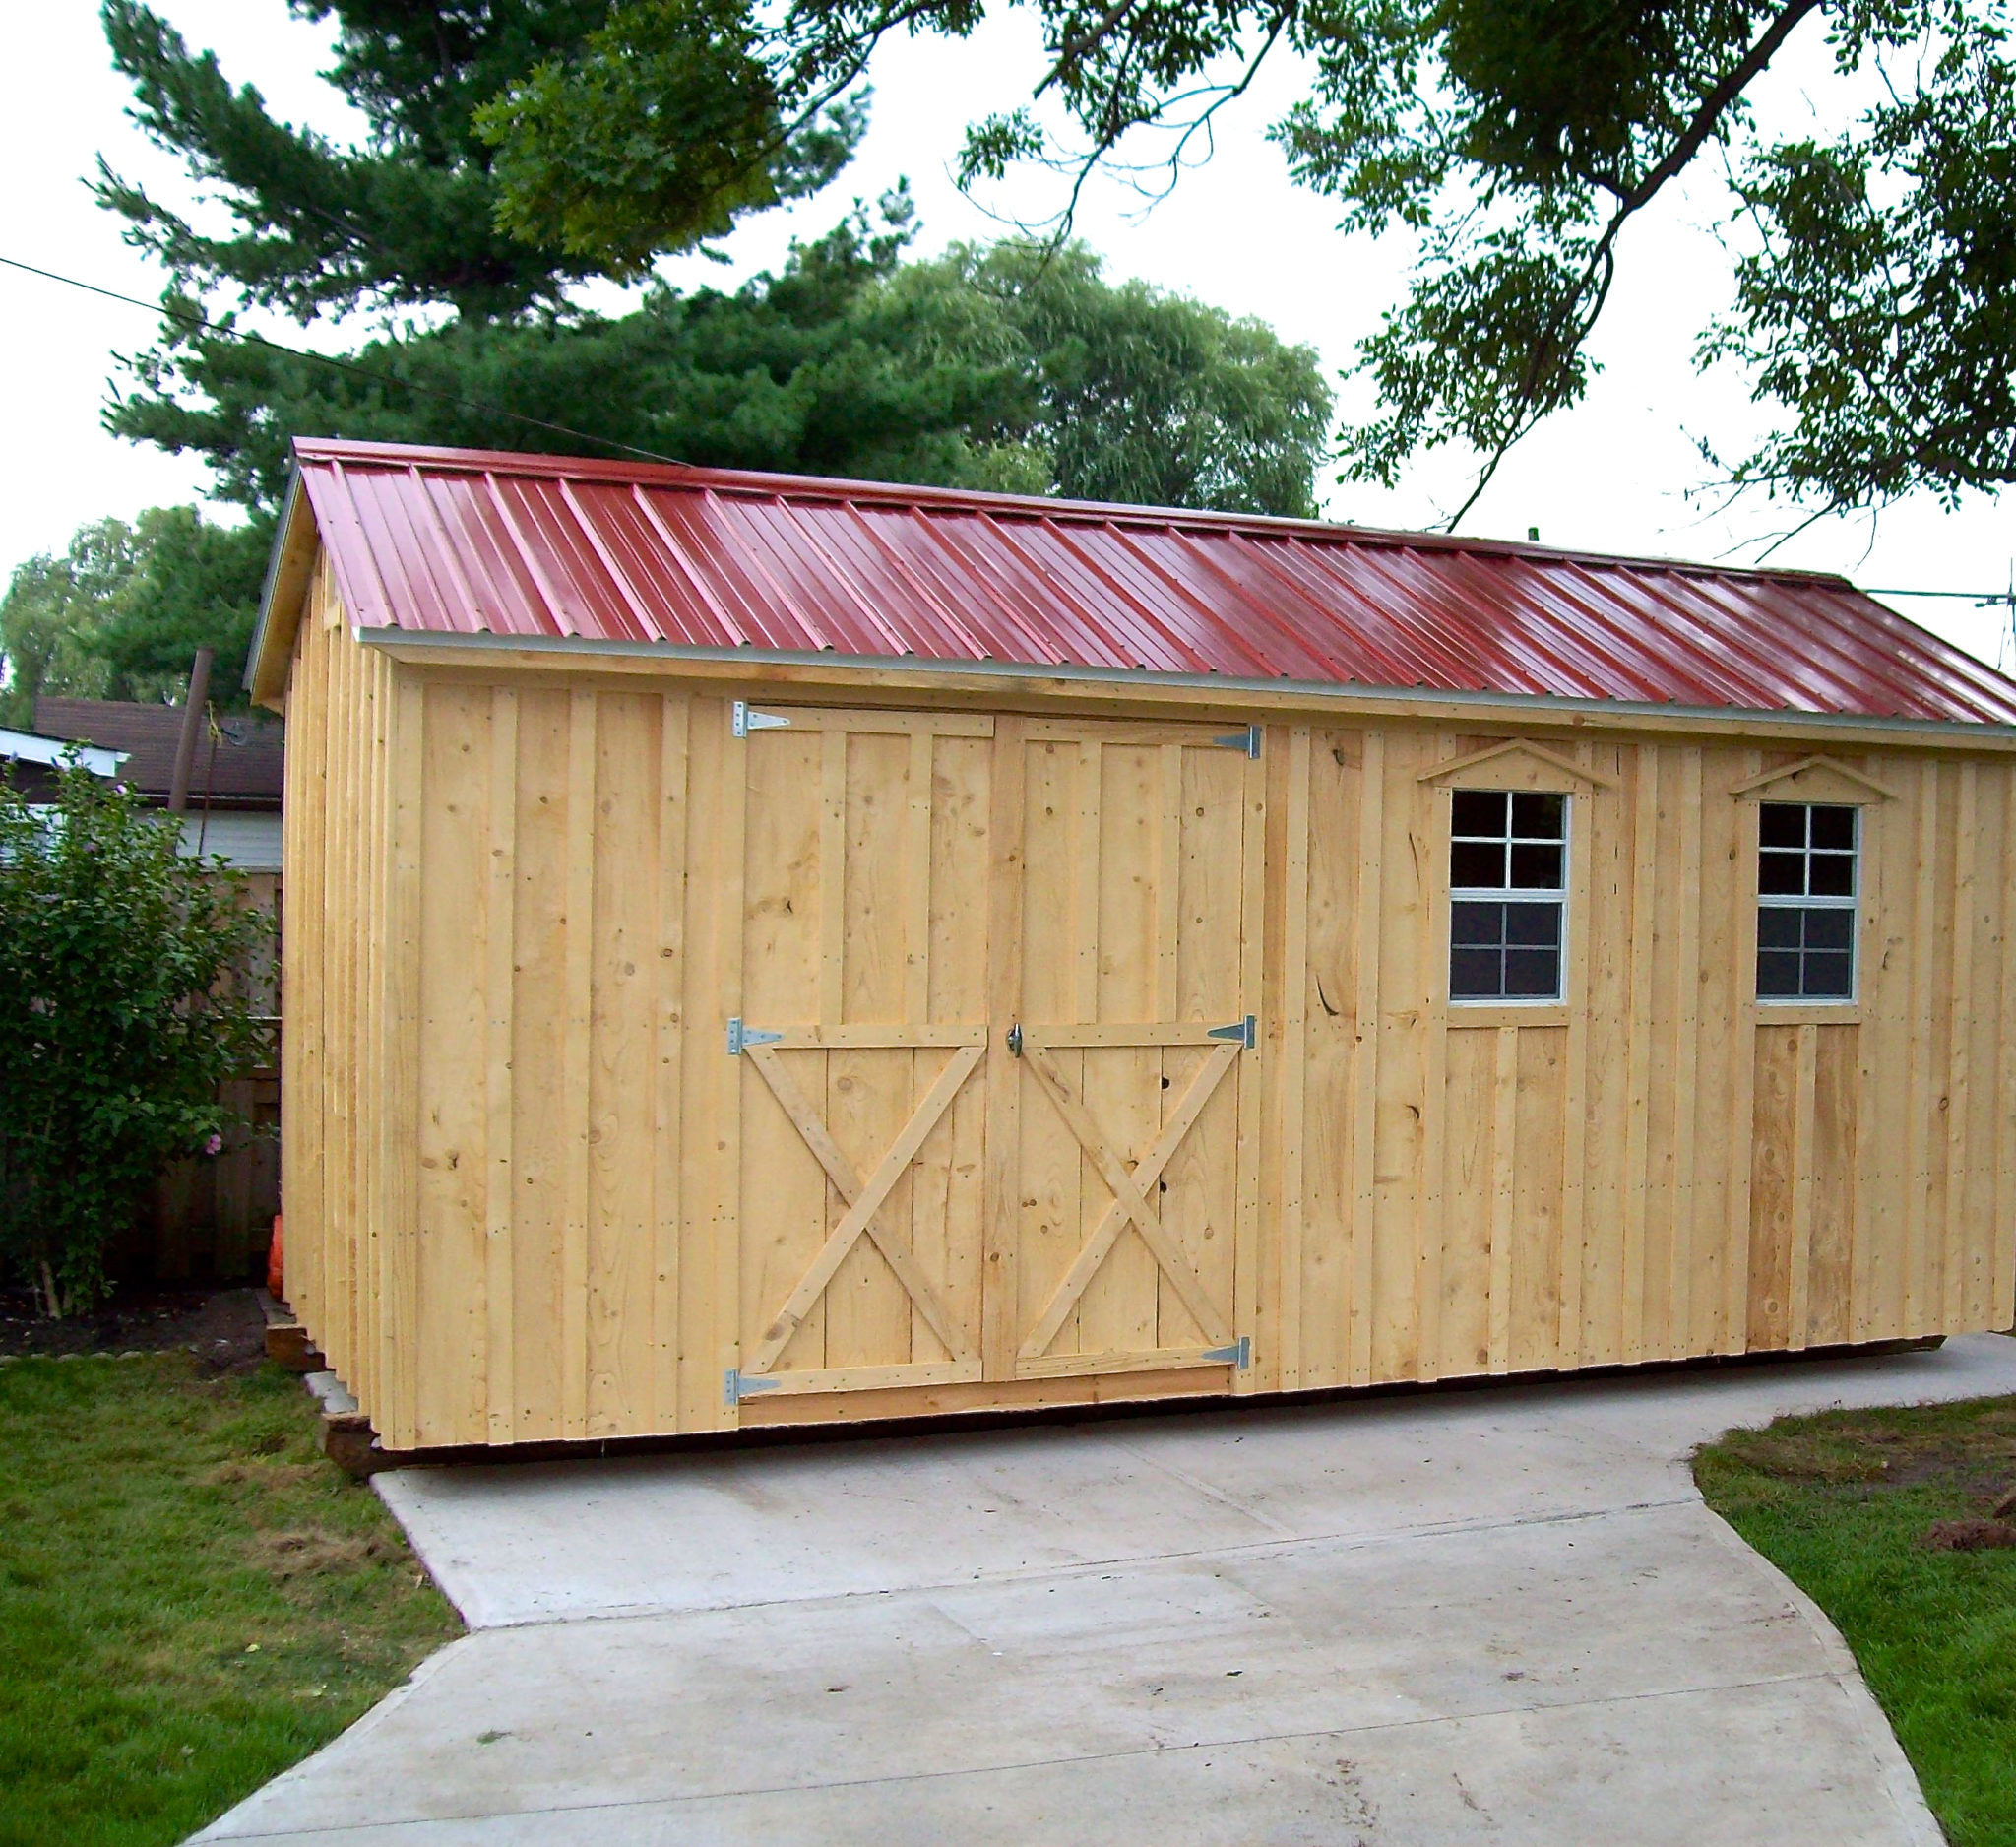 Amish Shed With Red Roof & Double Doors